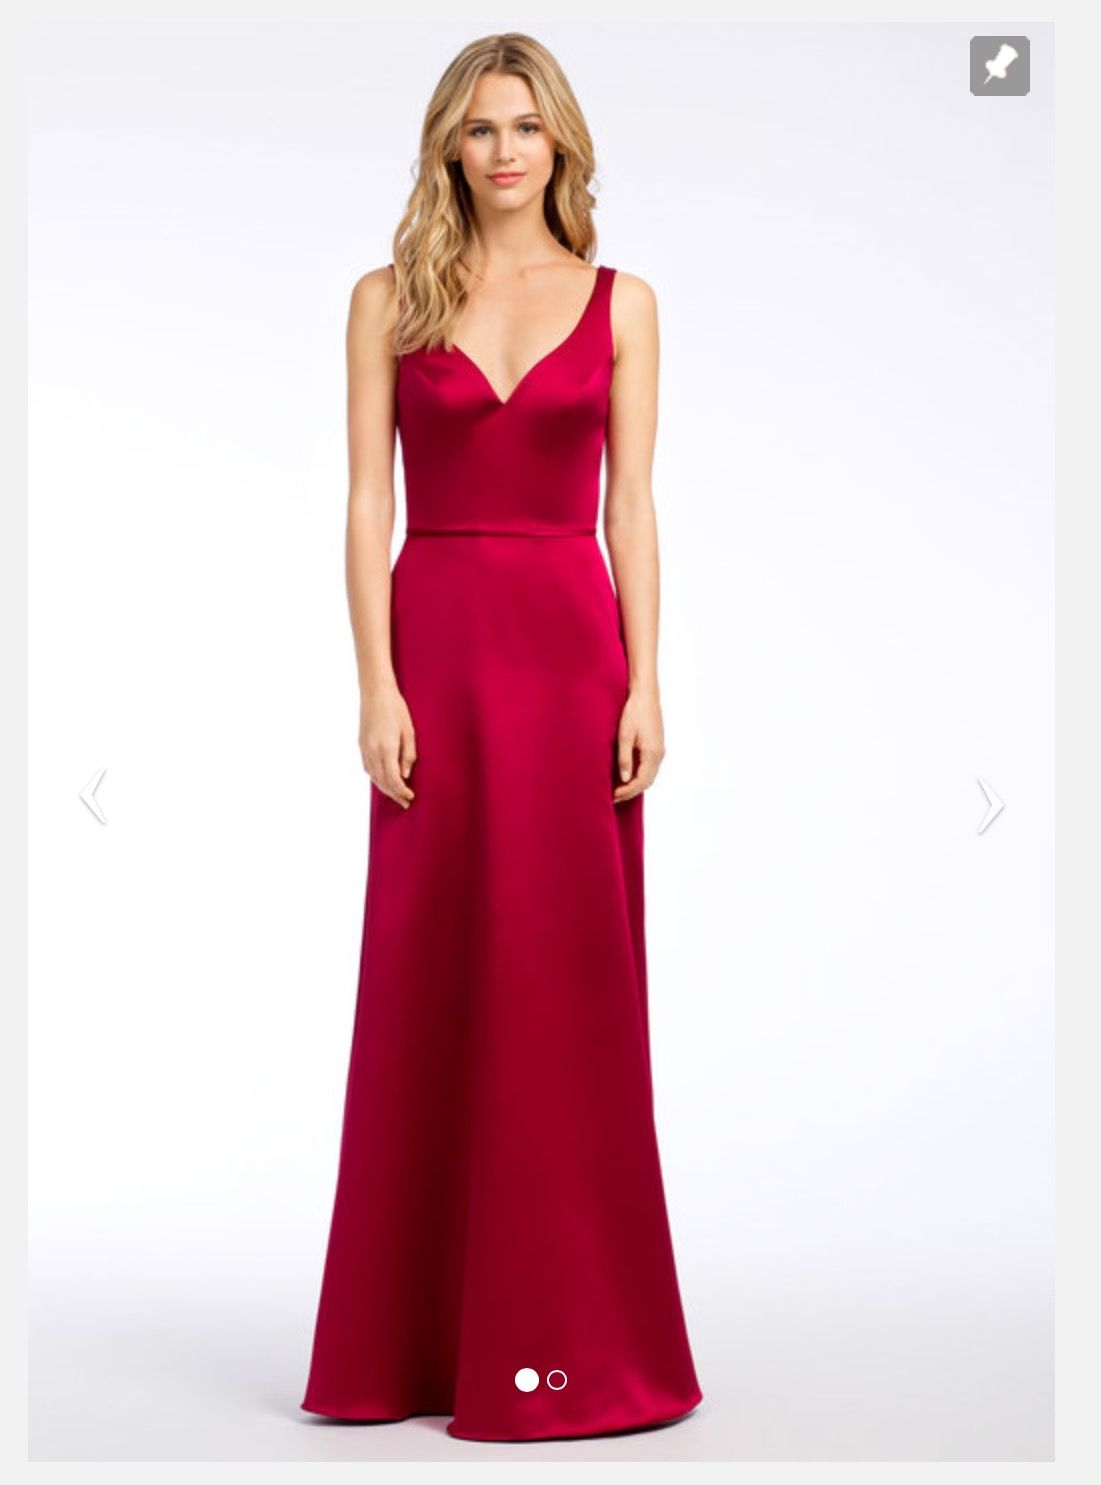 Hayley paige fitted satin bridesmaid dress in red hayley paige hayley paige fitted satin bridesmaid dress in red ombrellifo Choice Image